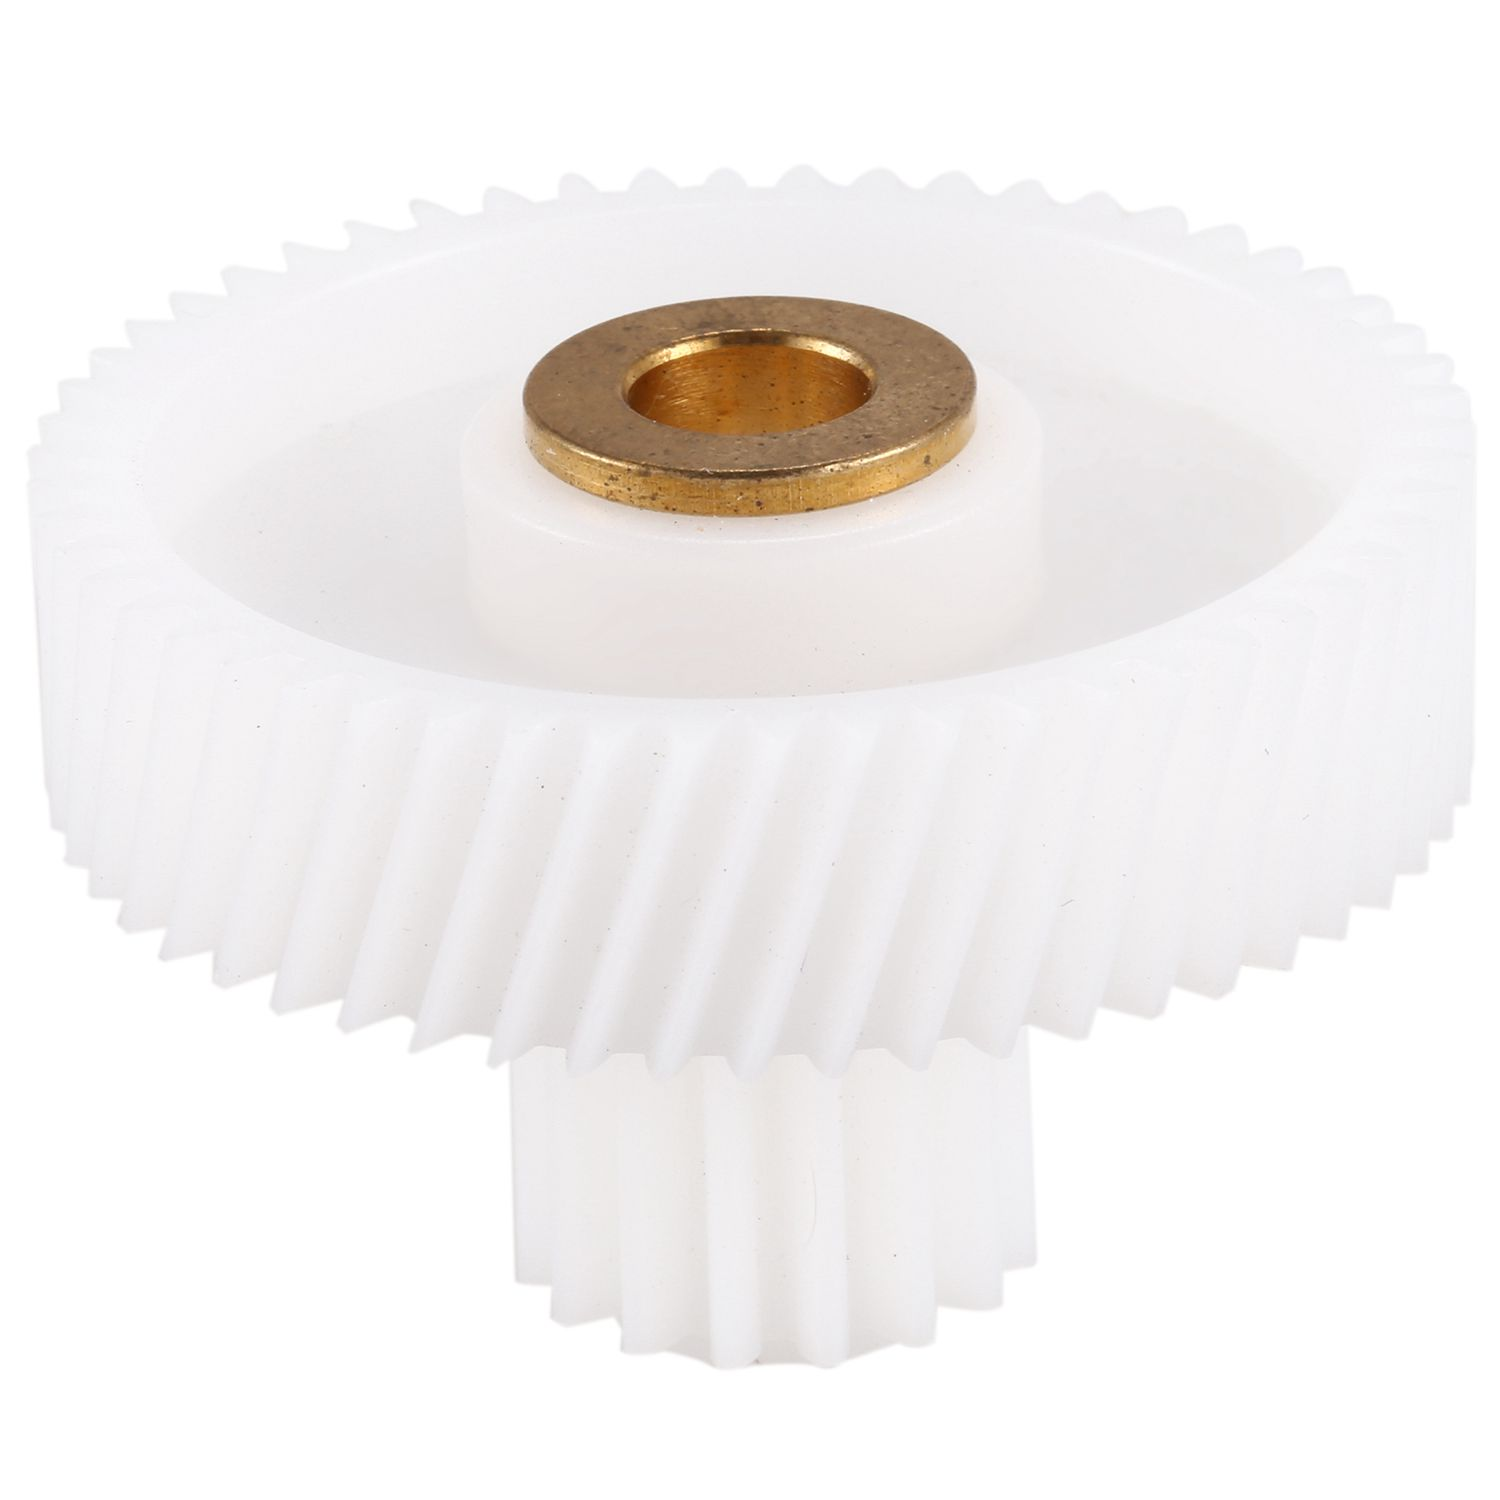 Meat Grinder Parts Plastic Gear Parts for Meat Grinder MG-2501-18-3 fit Elenberg Meat GrinderMeat Grinder Parts Plastic Gear Parts for Meat Grinder MG-2501-18-3 fit Elenberg Meat Grinder